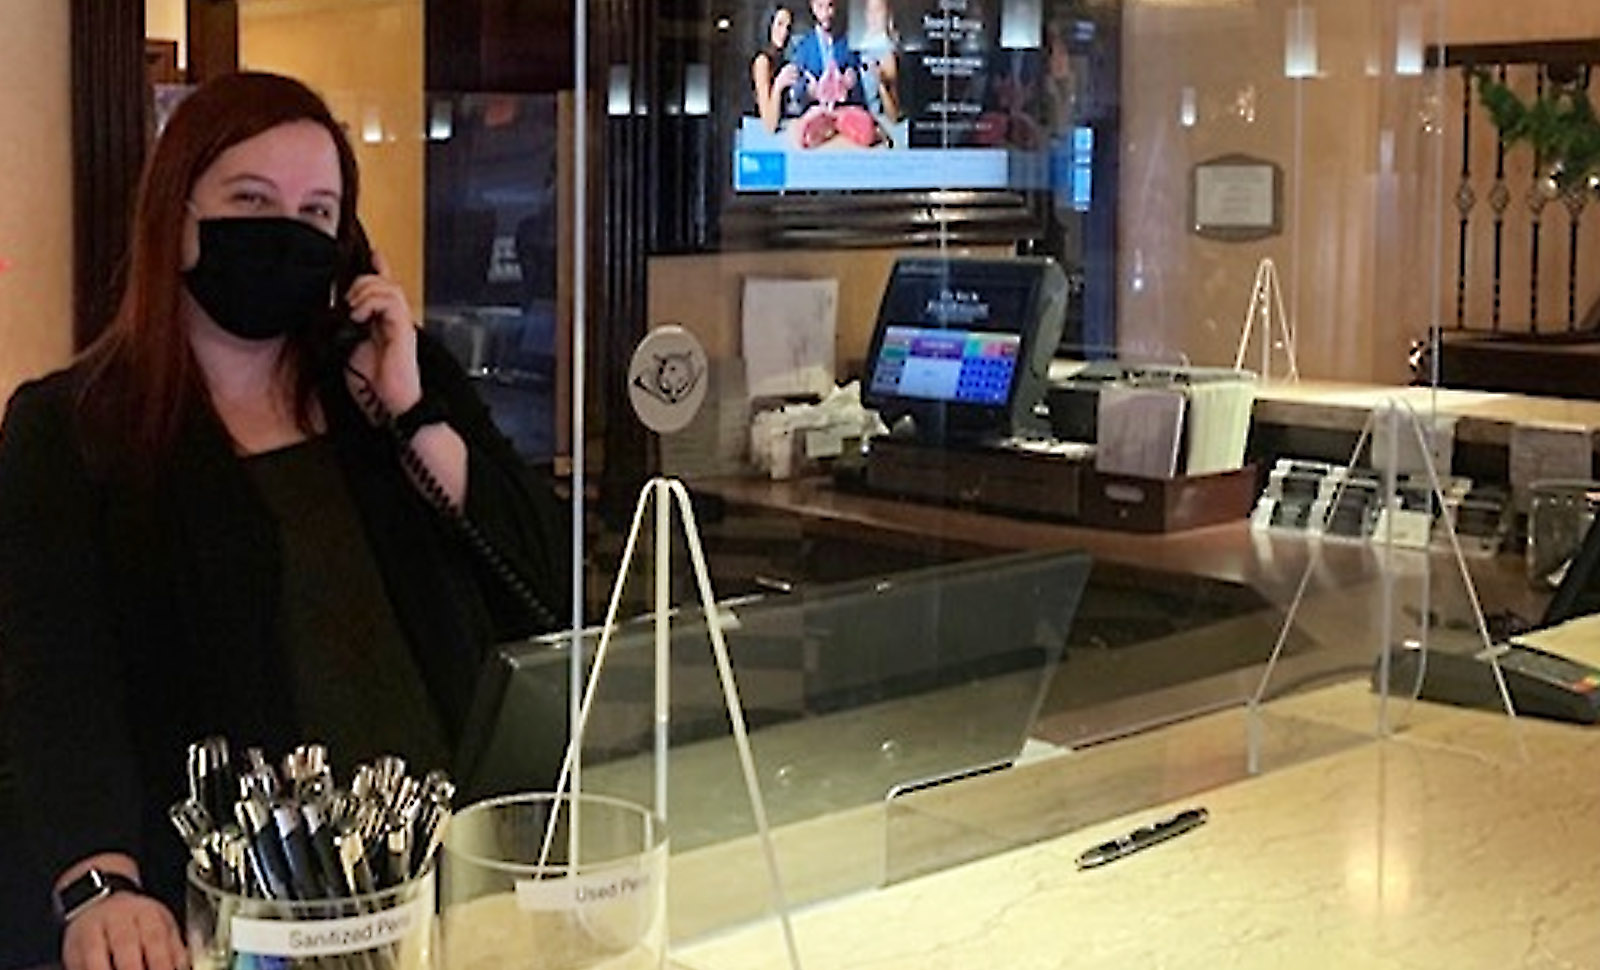 mask-wearing woman behind the hotel front desk smiling at the camera